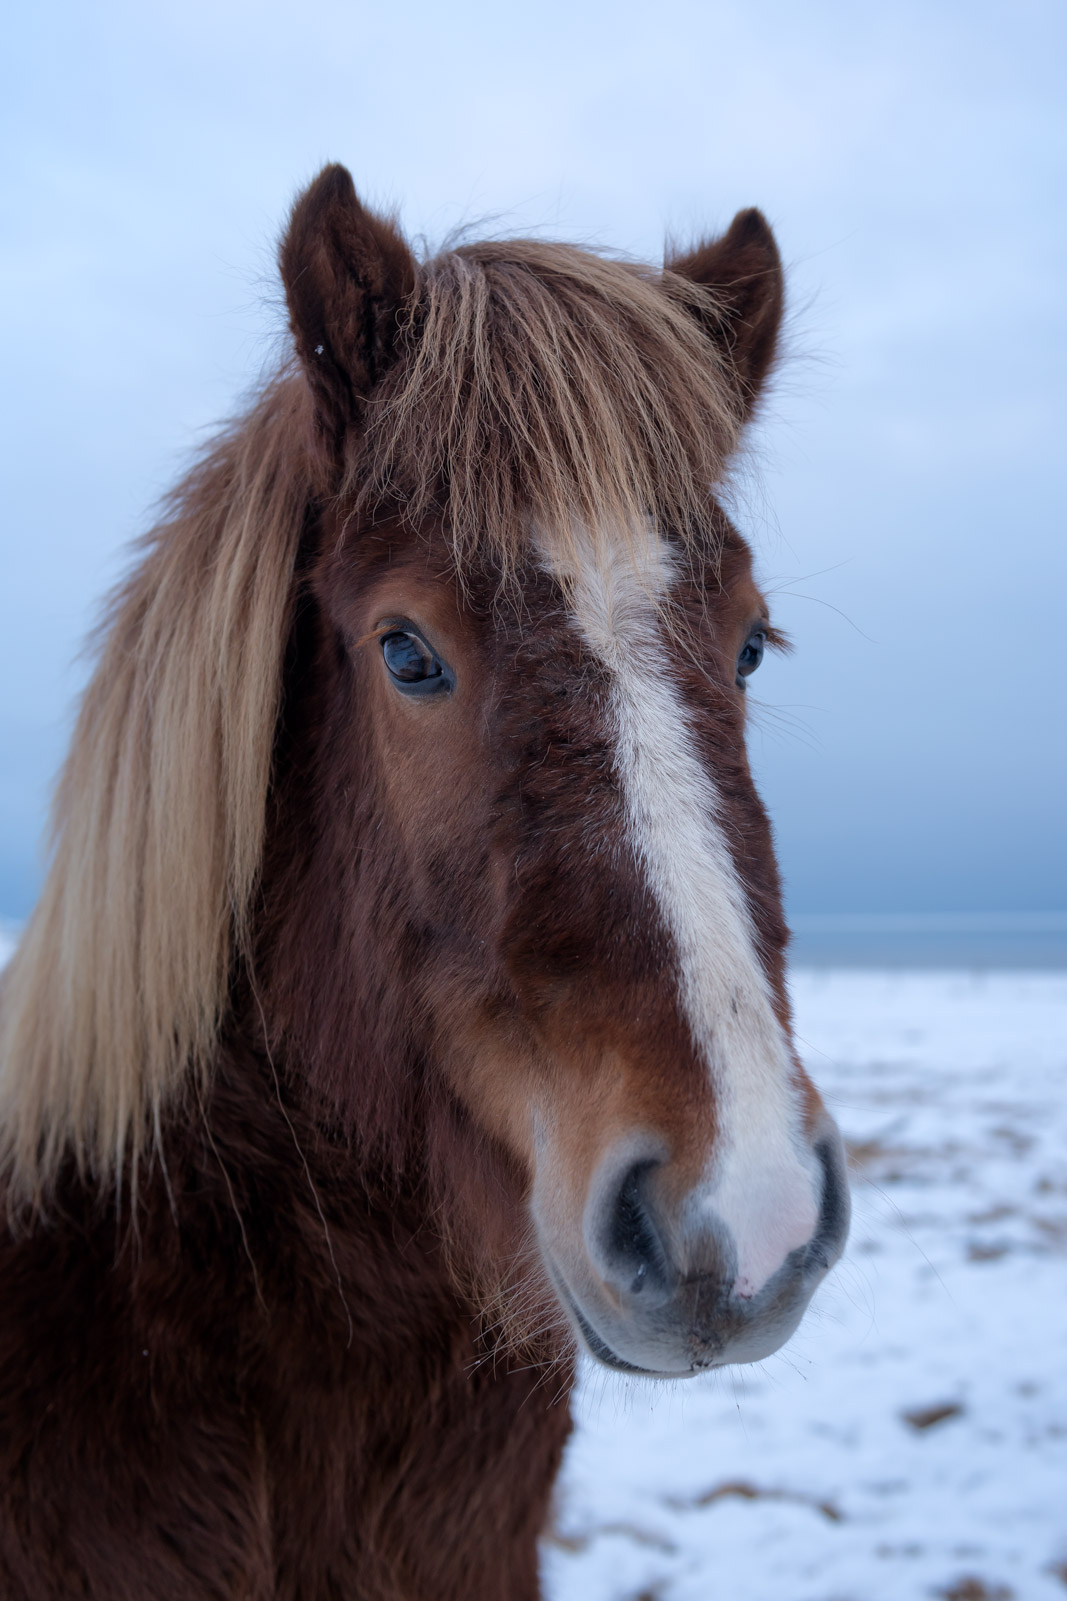 Iceland, Horses, Icelandic, winter, closeup, limited edition, photograph, photo